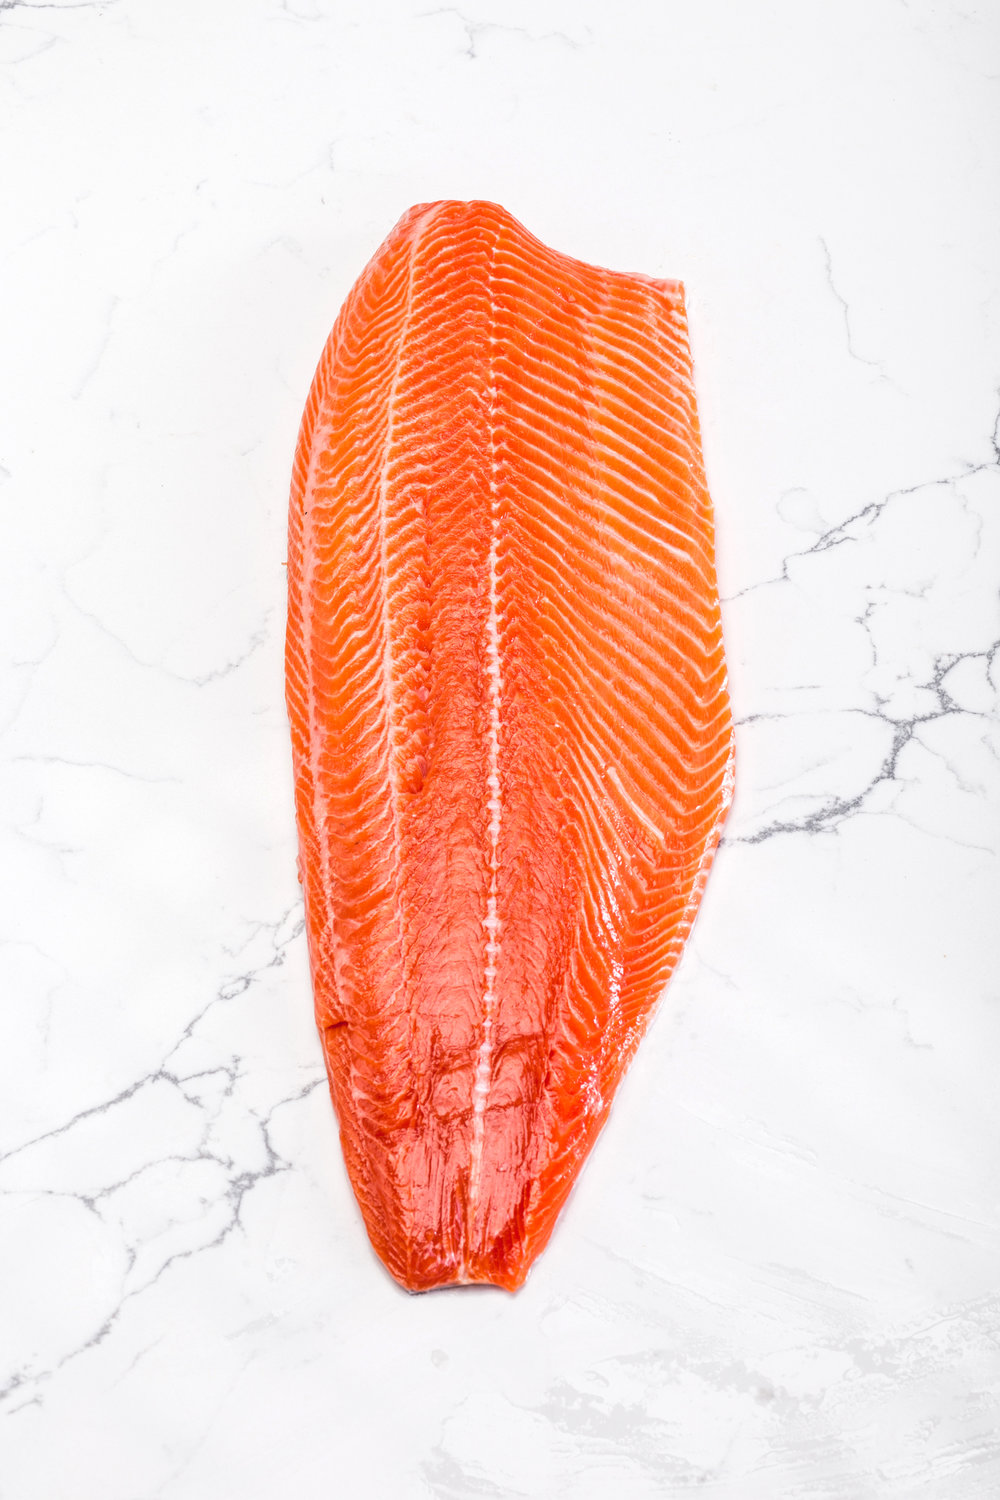 Wixter Salmon filet-2.jpg